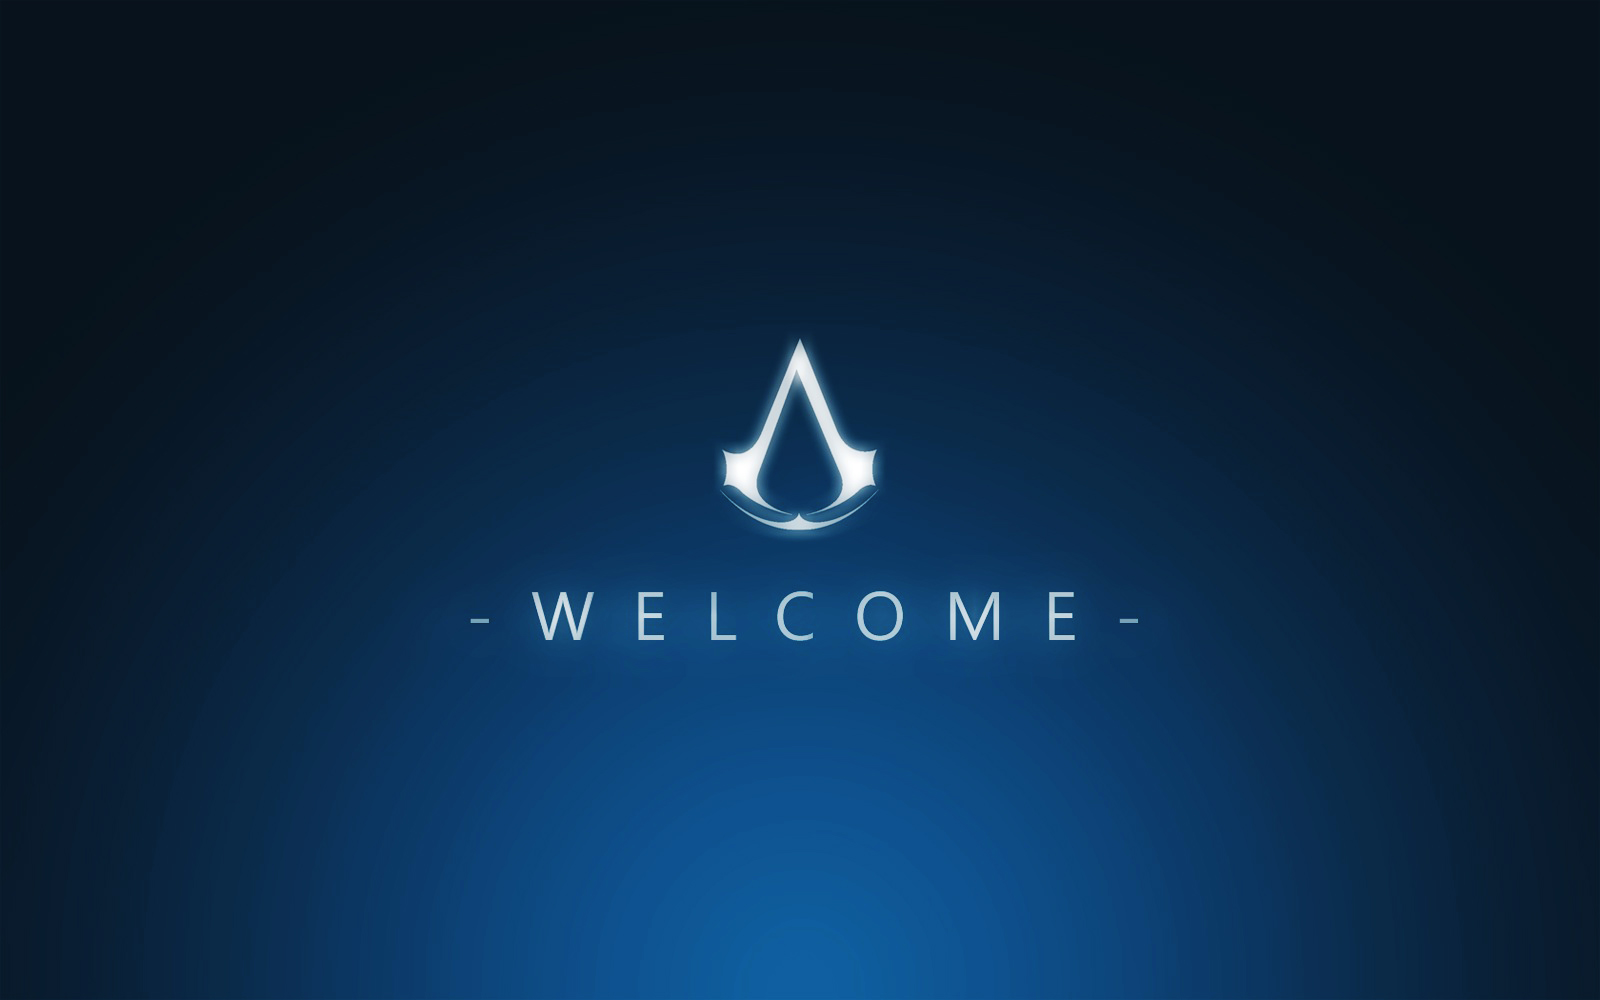 http://4.bp.blogspot.com/-KVTJkolQoQM/Too8RdR2KWI/AAAAAAAADVk/tKQfh6kvH-s/s1600/Assassin%2527s_Creed_Logo_Blue_HD_Wallpaper_widescreenwallpapersbox.blogspot.com.jpg.jpg